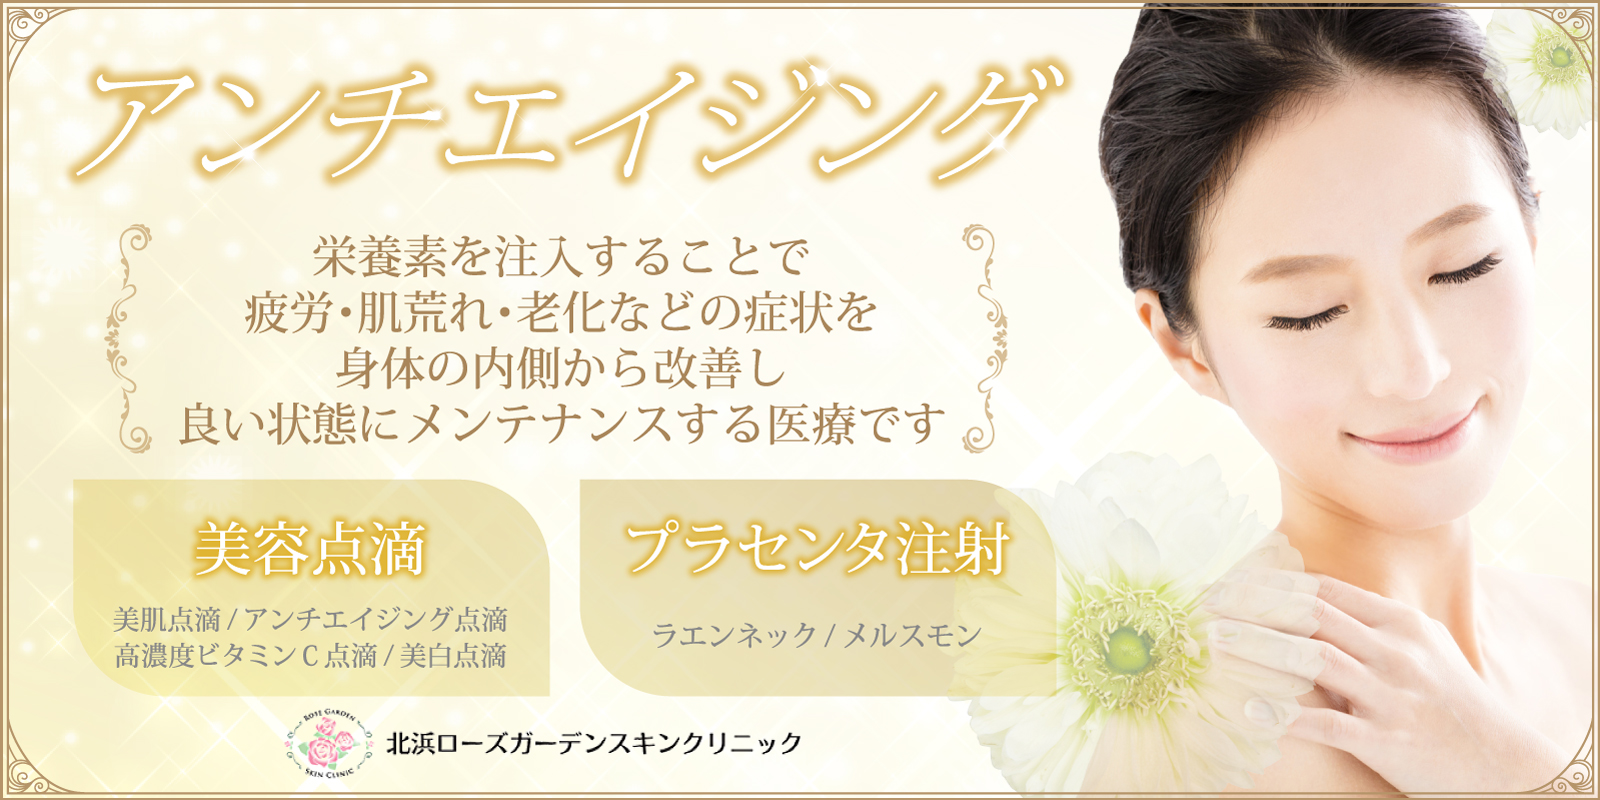 都会にたたずむ『Beauty Oasis』Kitahama Rose Garden Skin Clinic